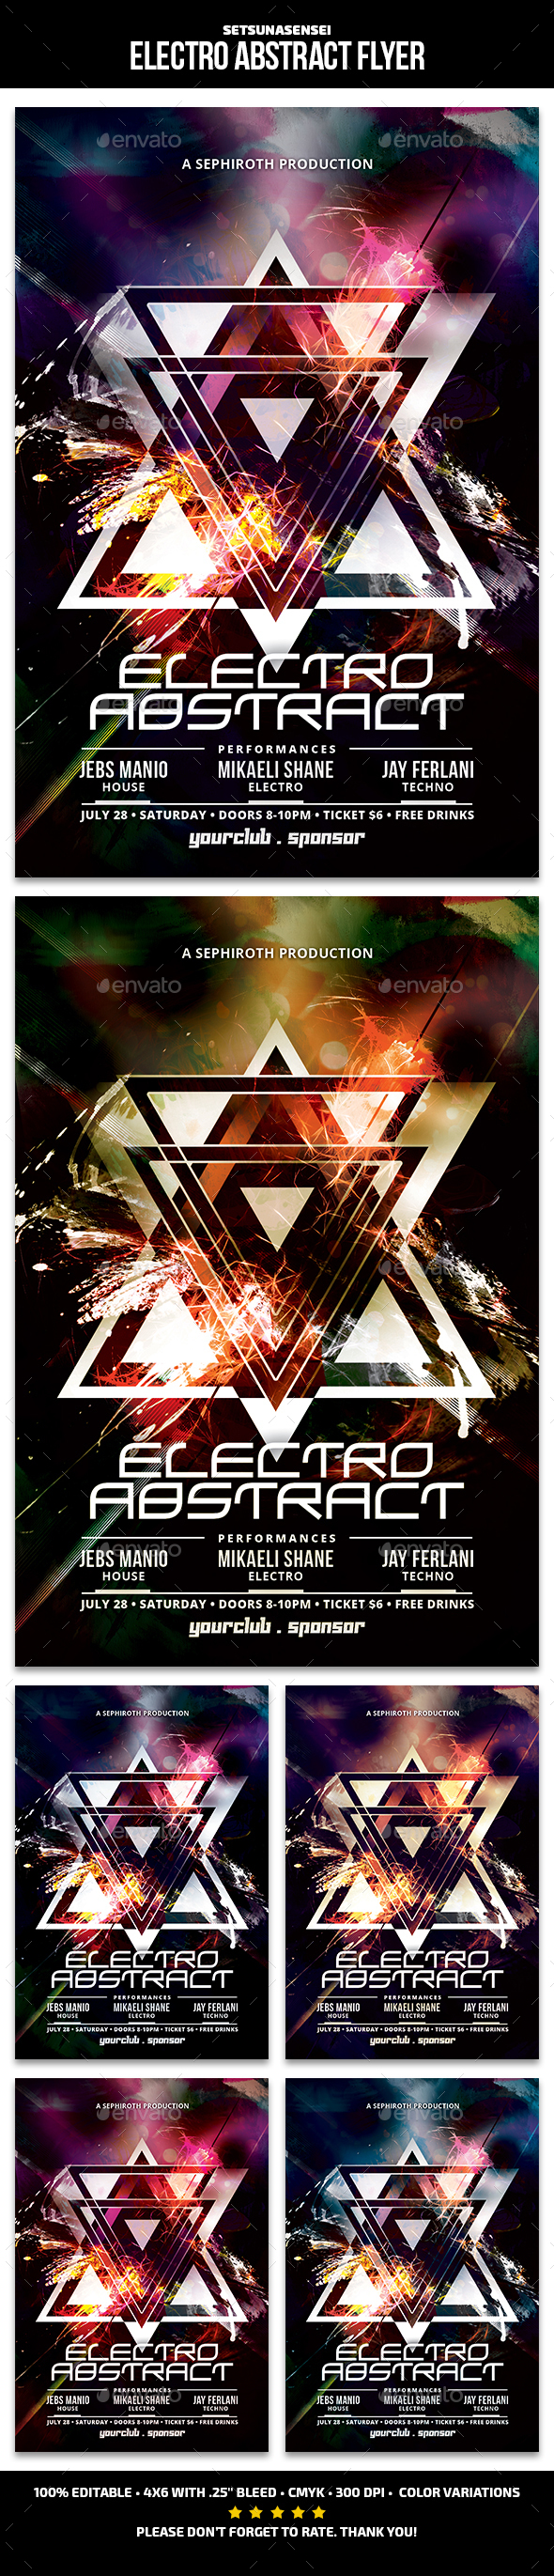 Electro Abstract Flyer - Church Flyers